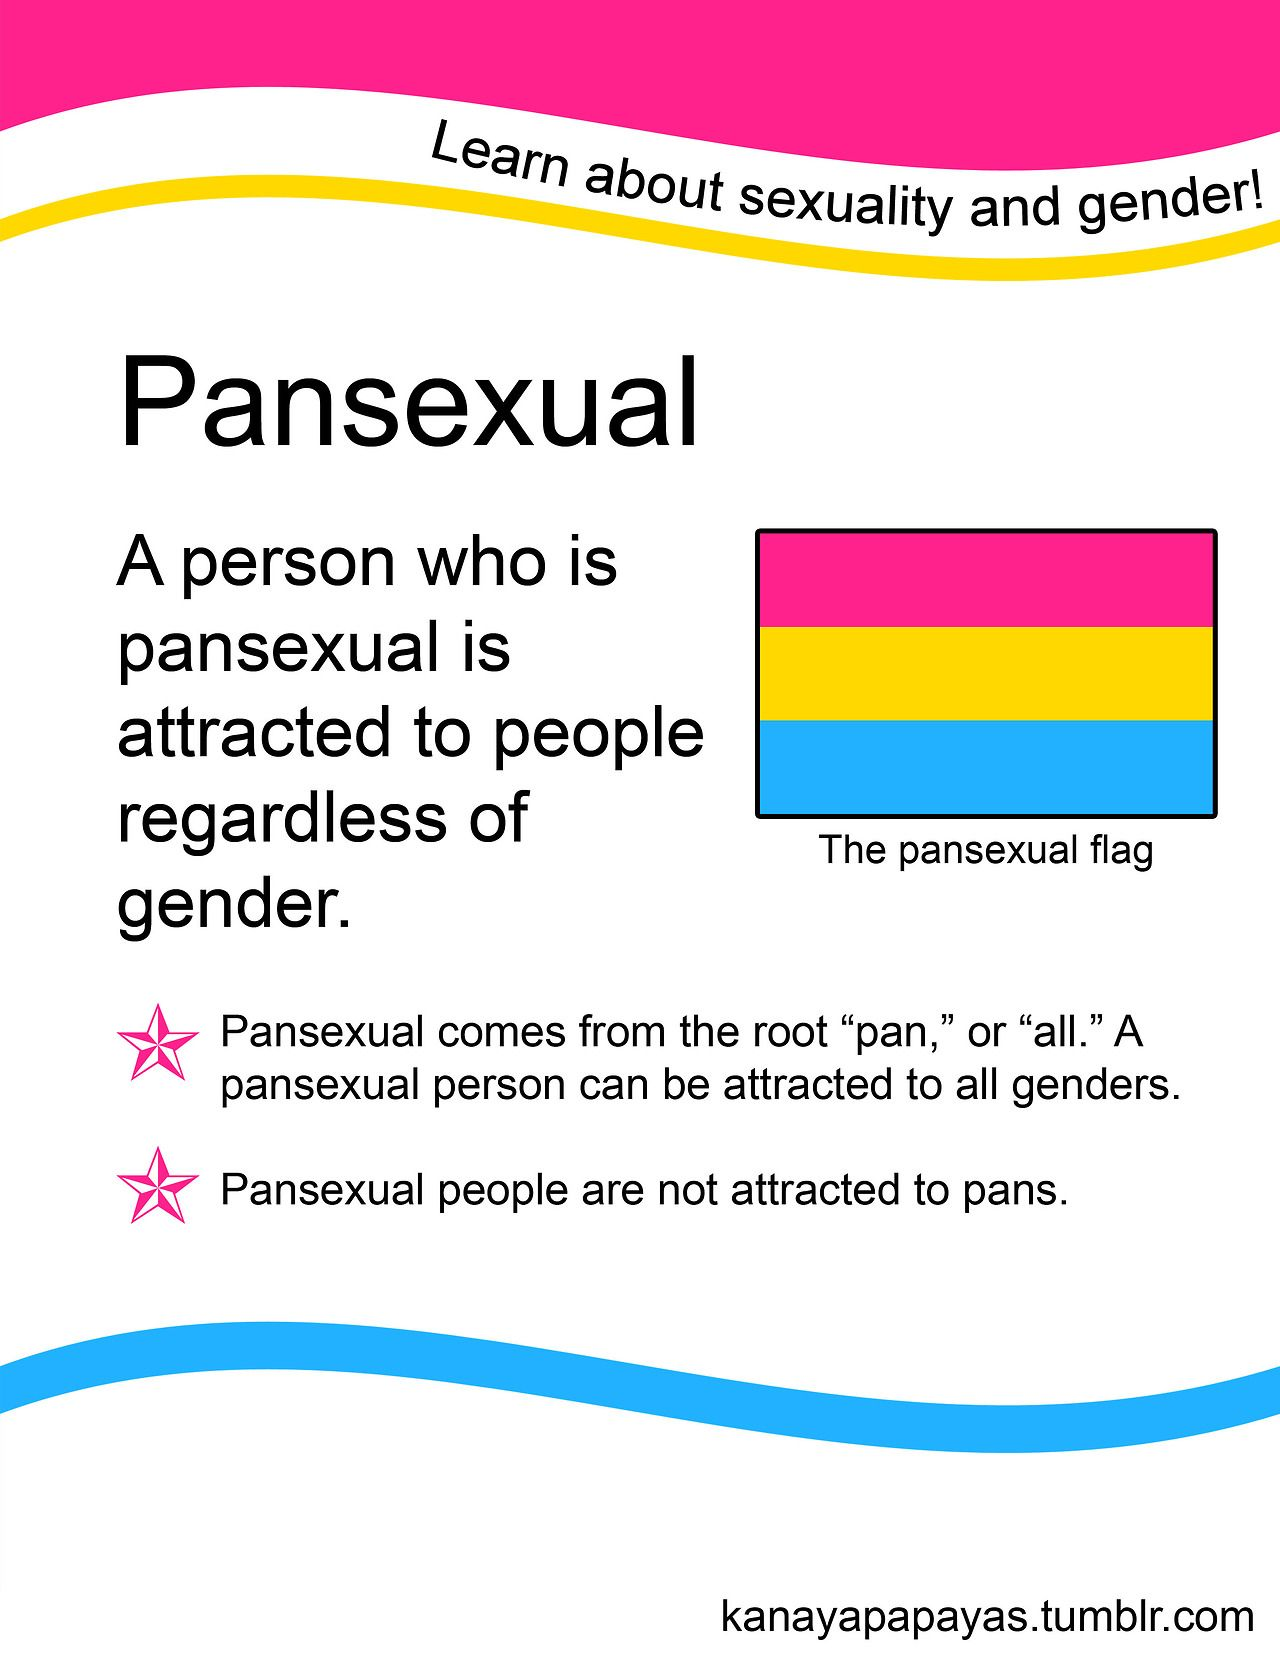 Pan homosexual rights